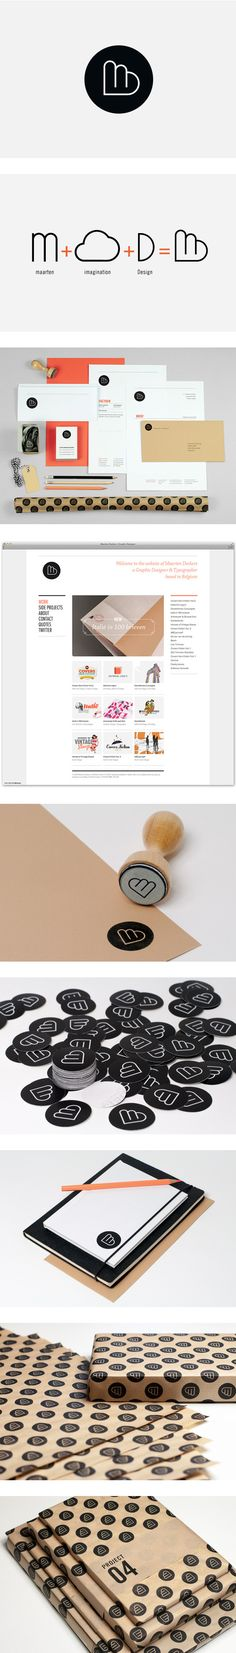 Maarten Deckers by Maarten Deckers, via Behance #identity #packaging #branding PD